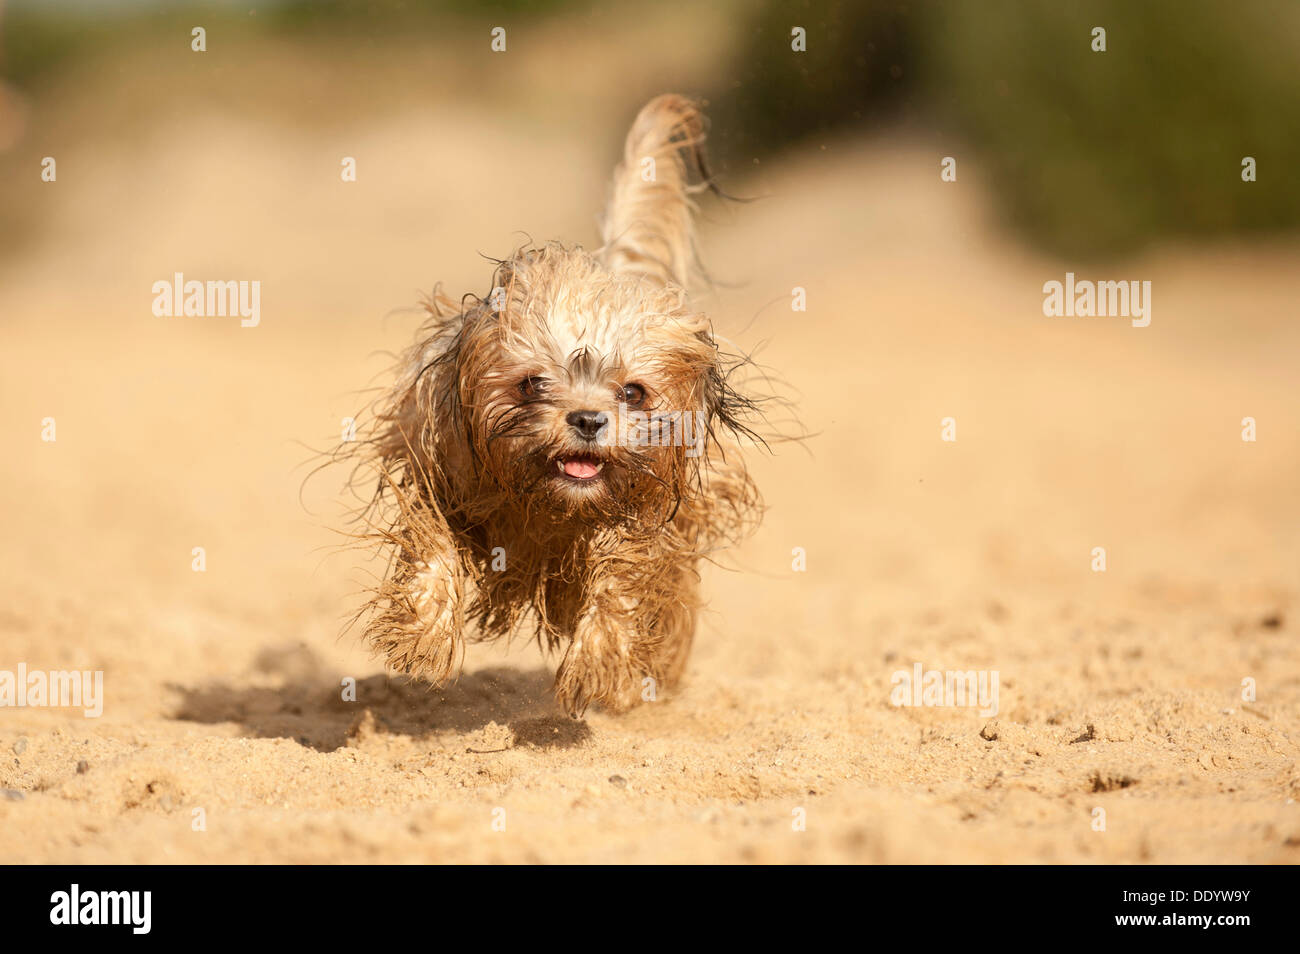 Galloping wet Bolonka Zwetna or Coloured Lapdog - Stock Image